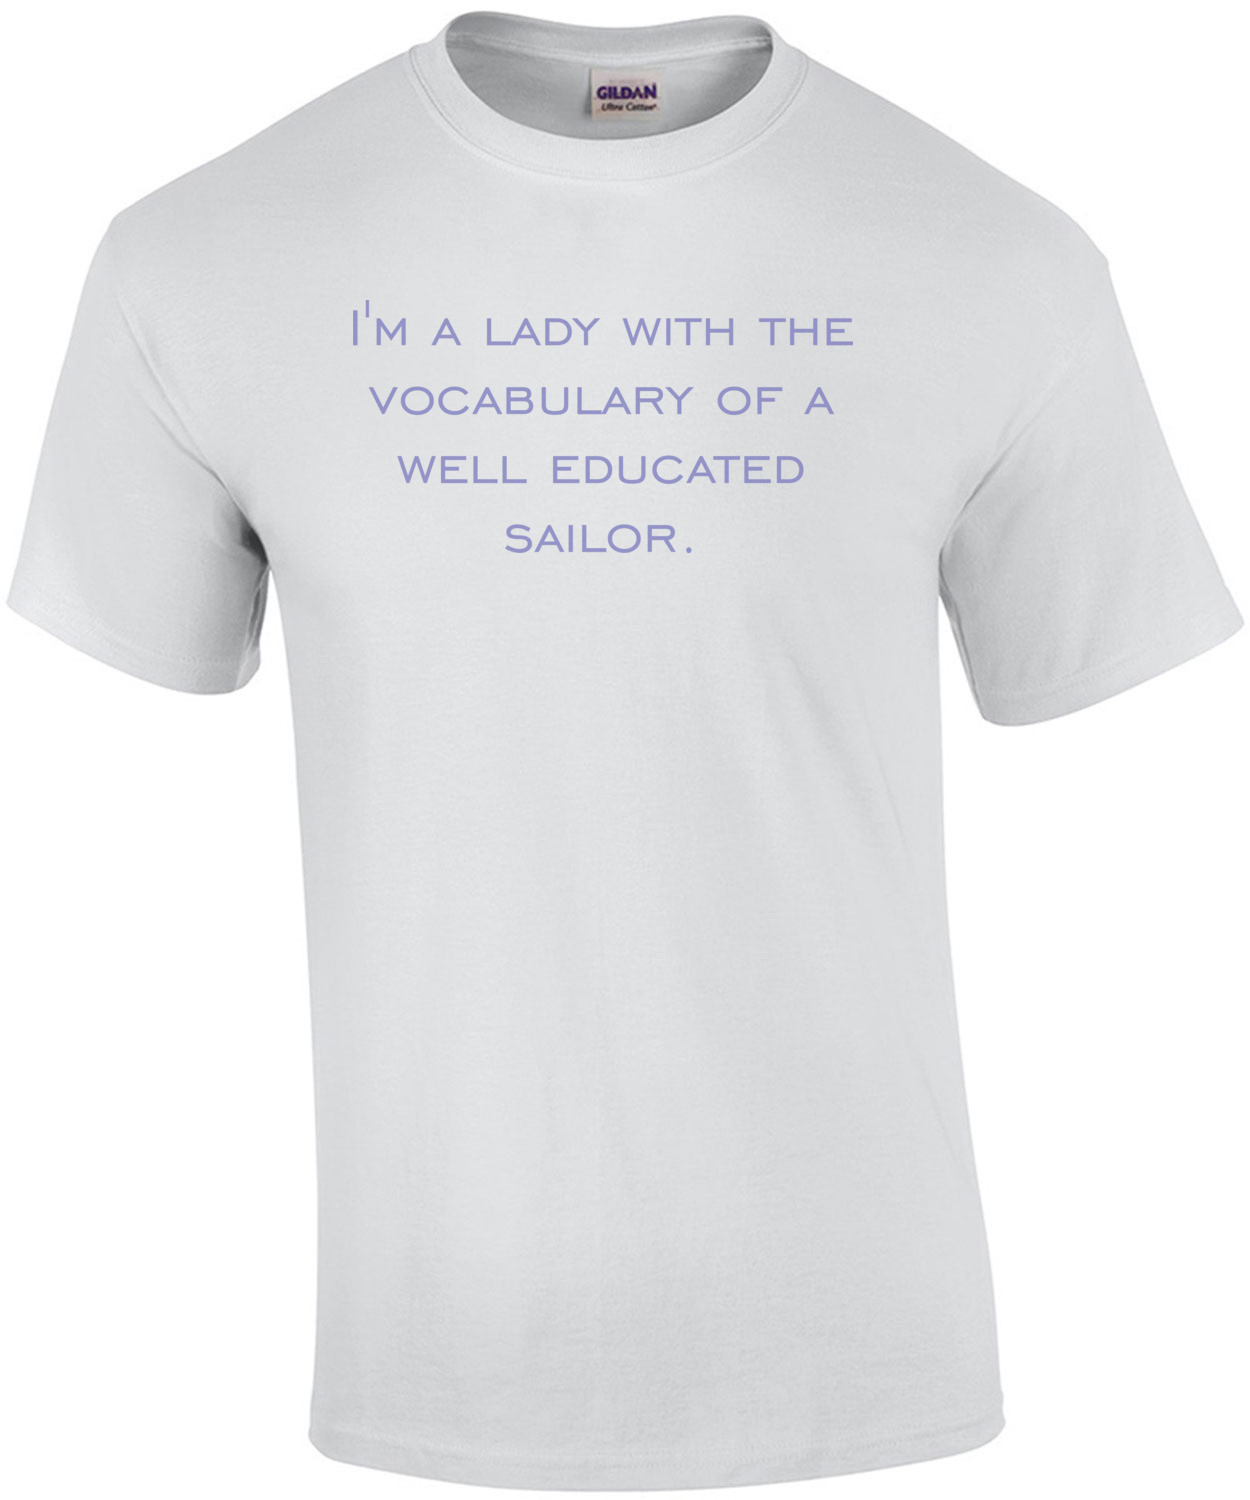 I'm a lady with the vocabulary of a well educated sailor. t-shirt